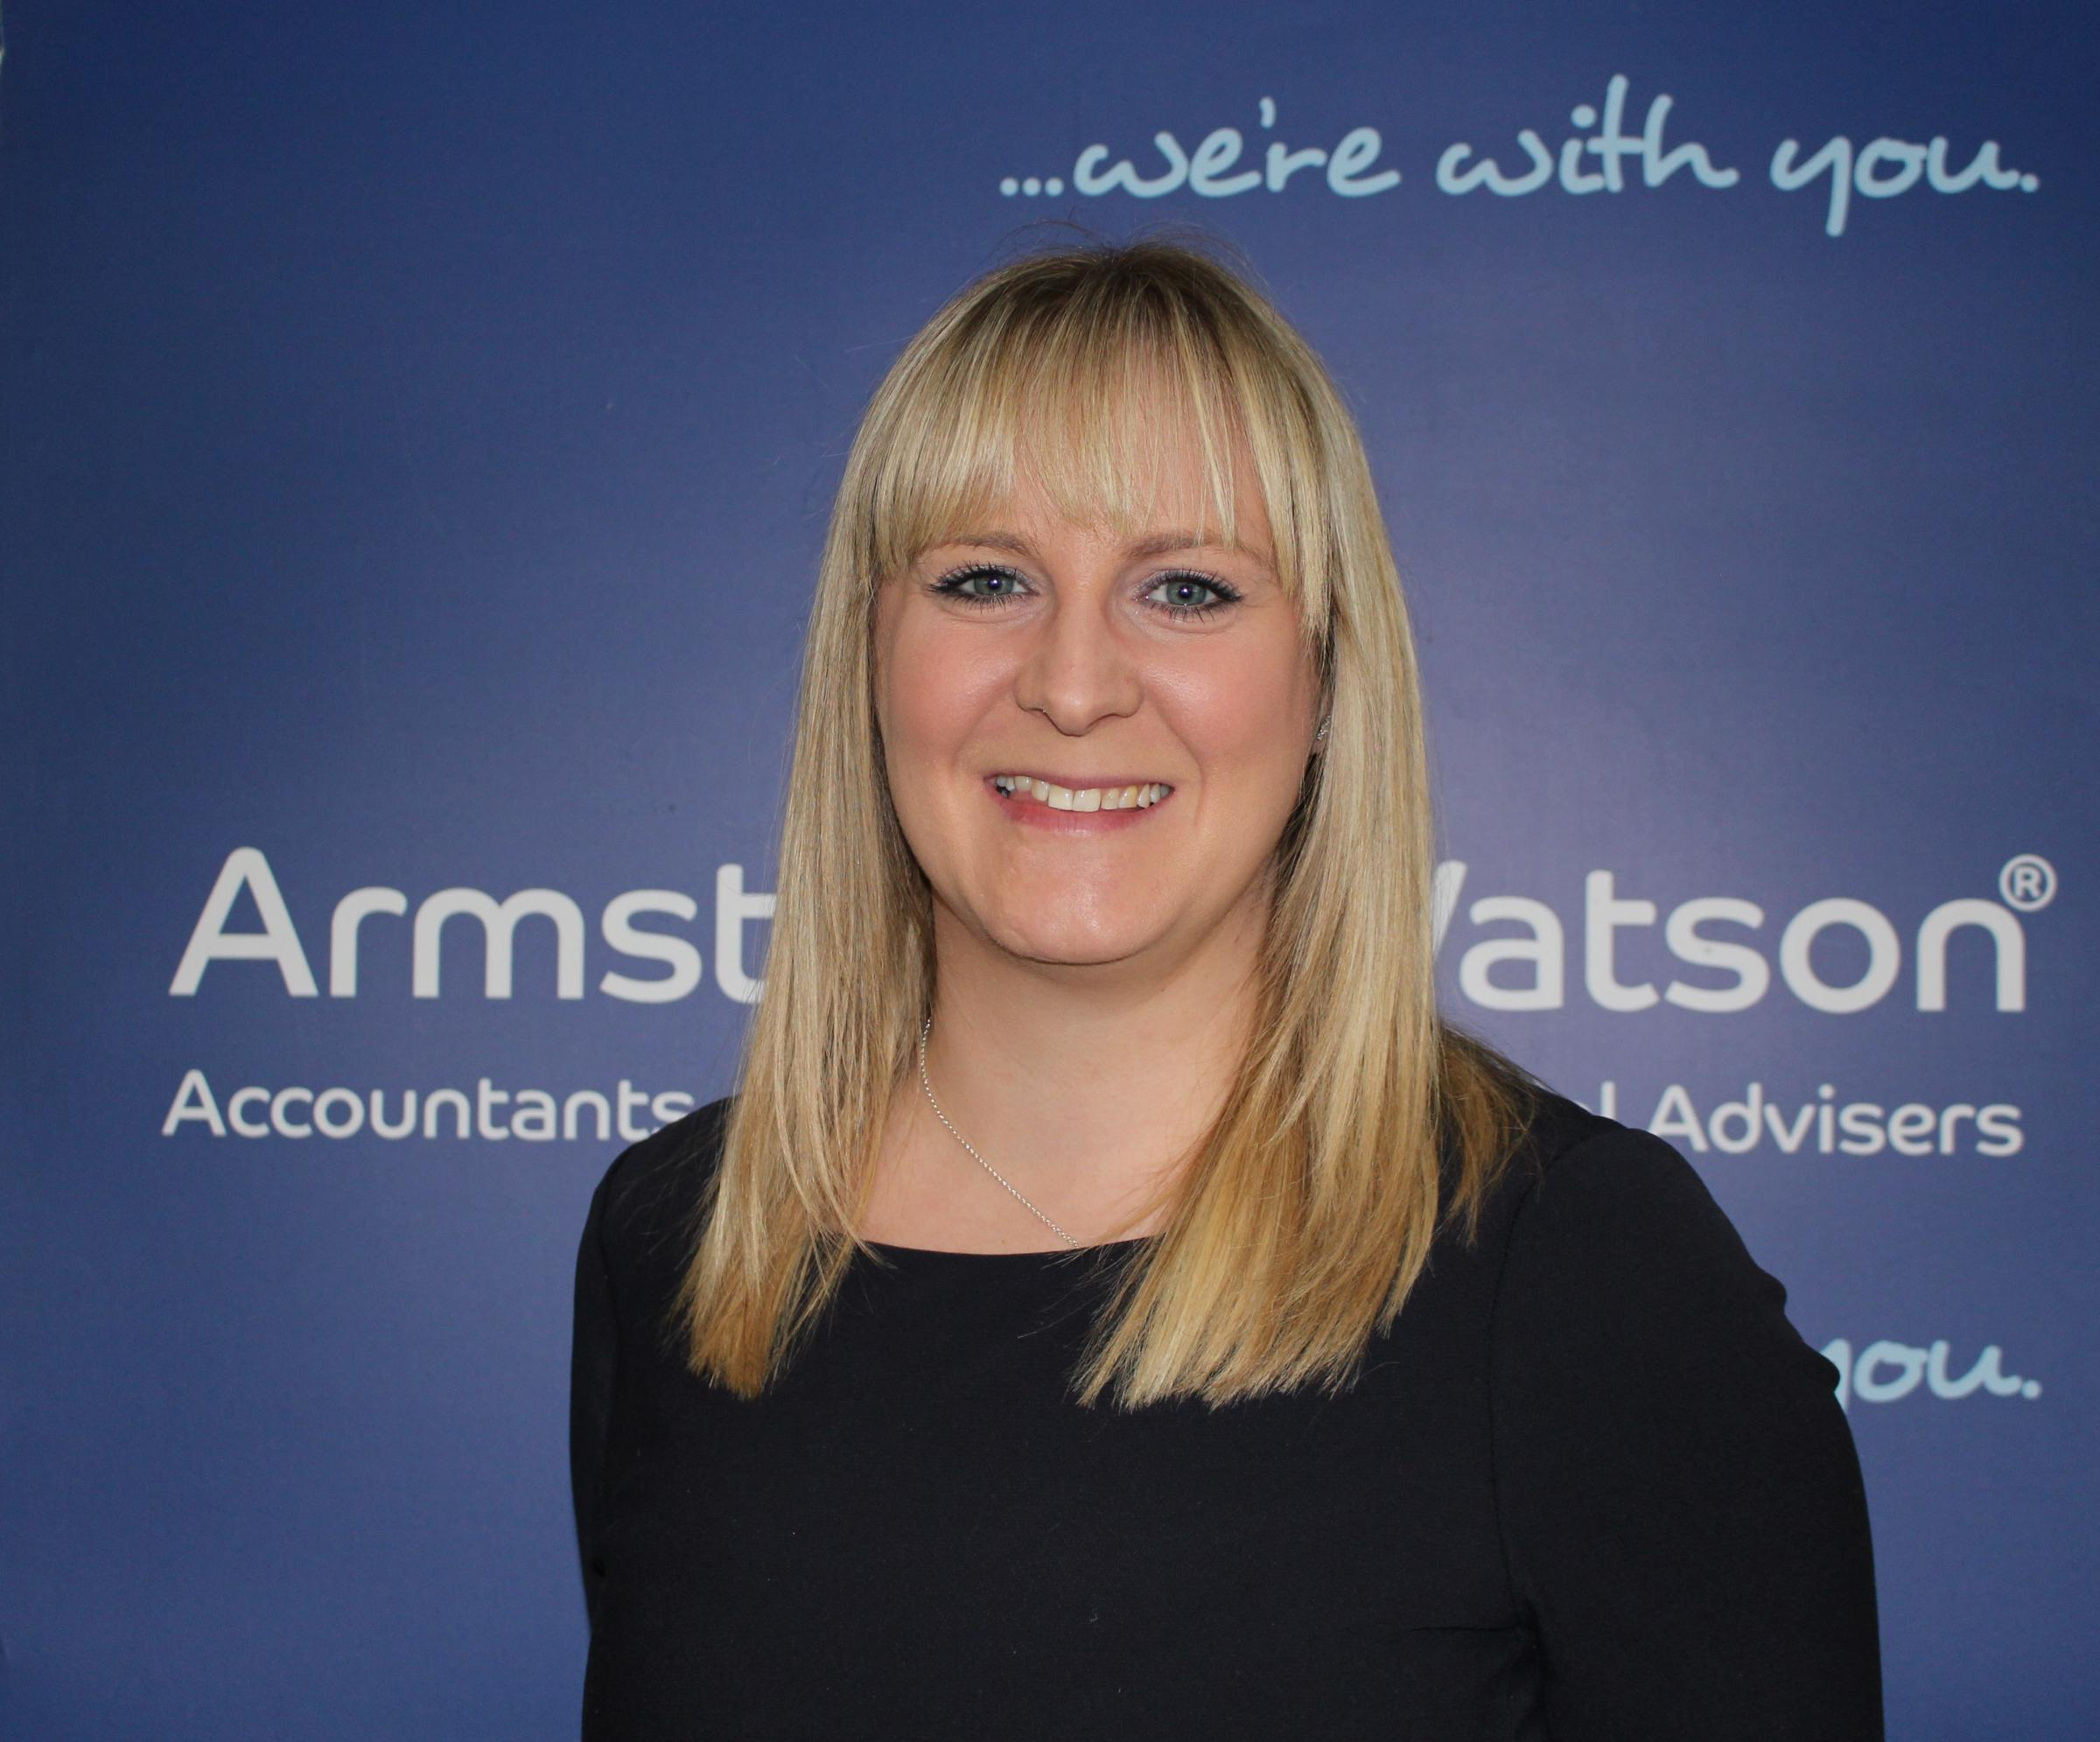 BUSINESS COLUMN: 7 things to think about ahead of VAT change